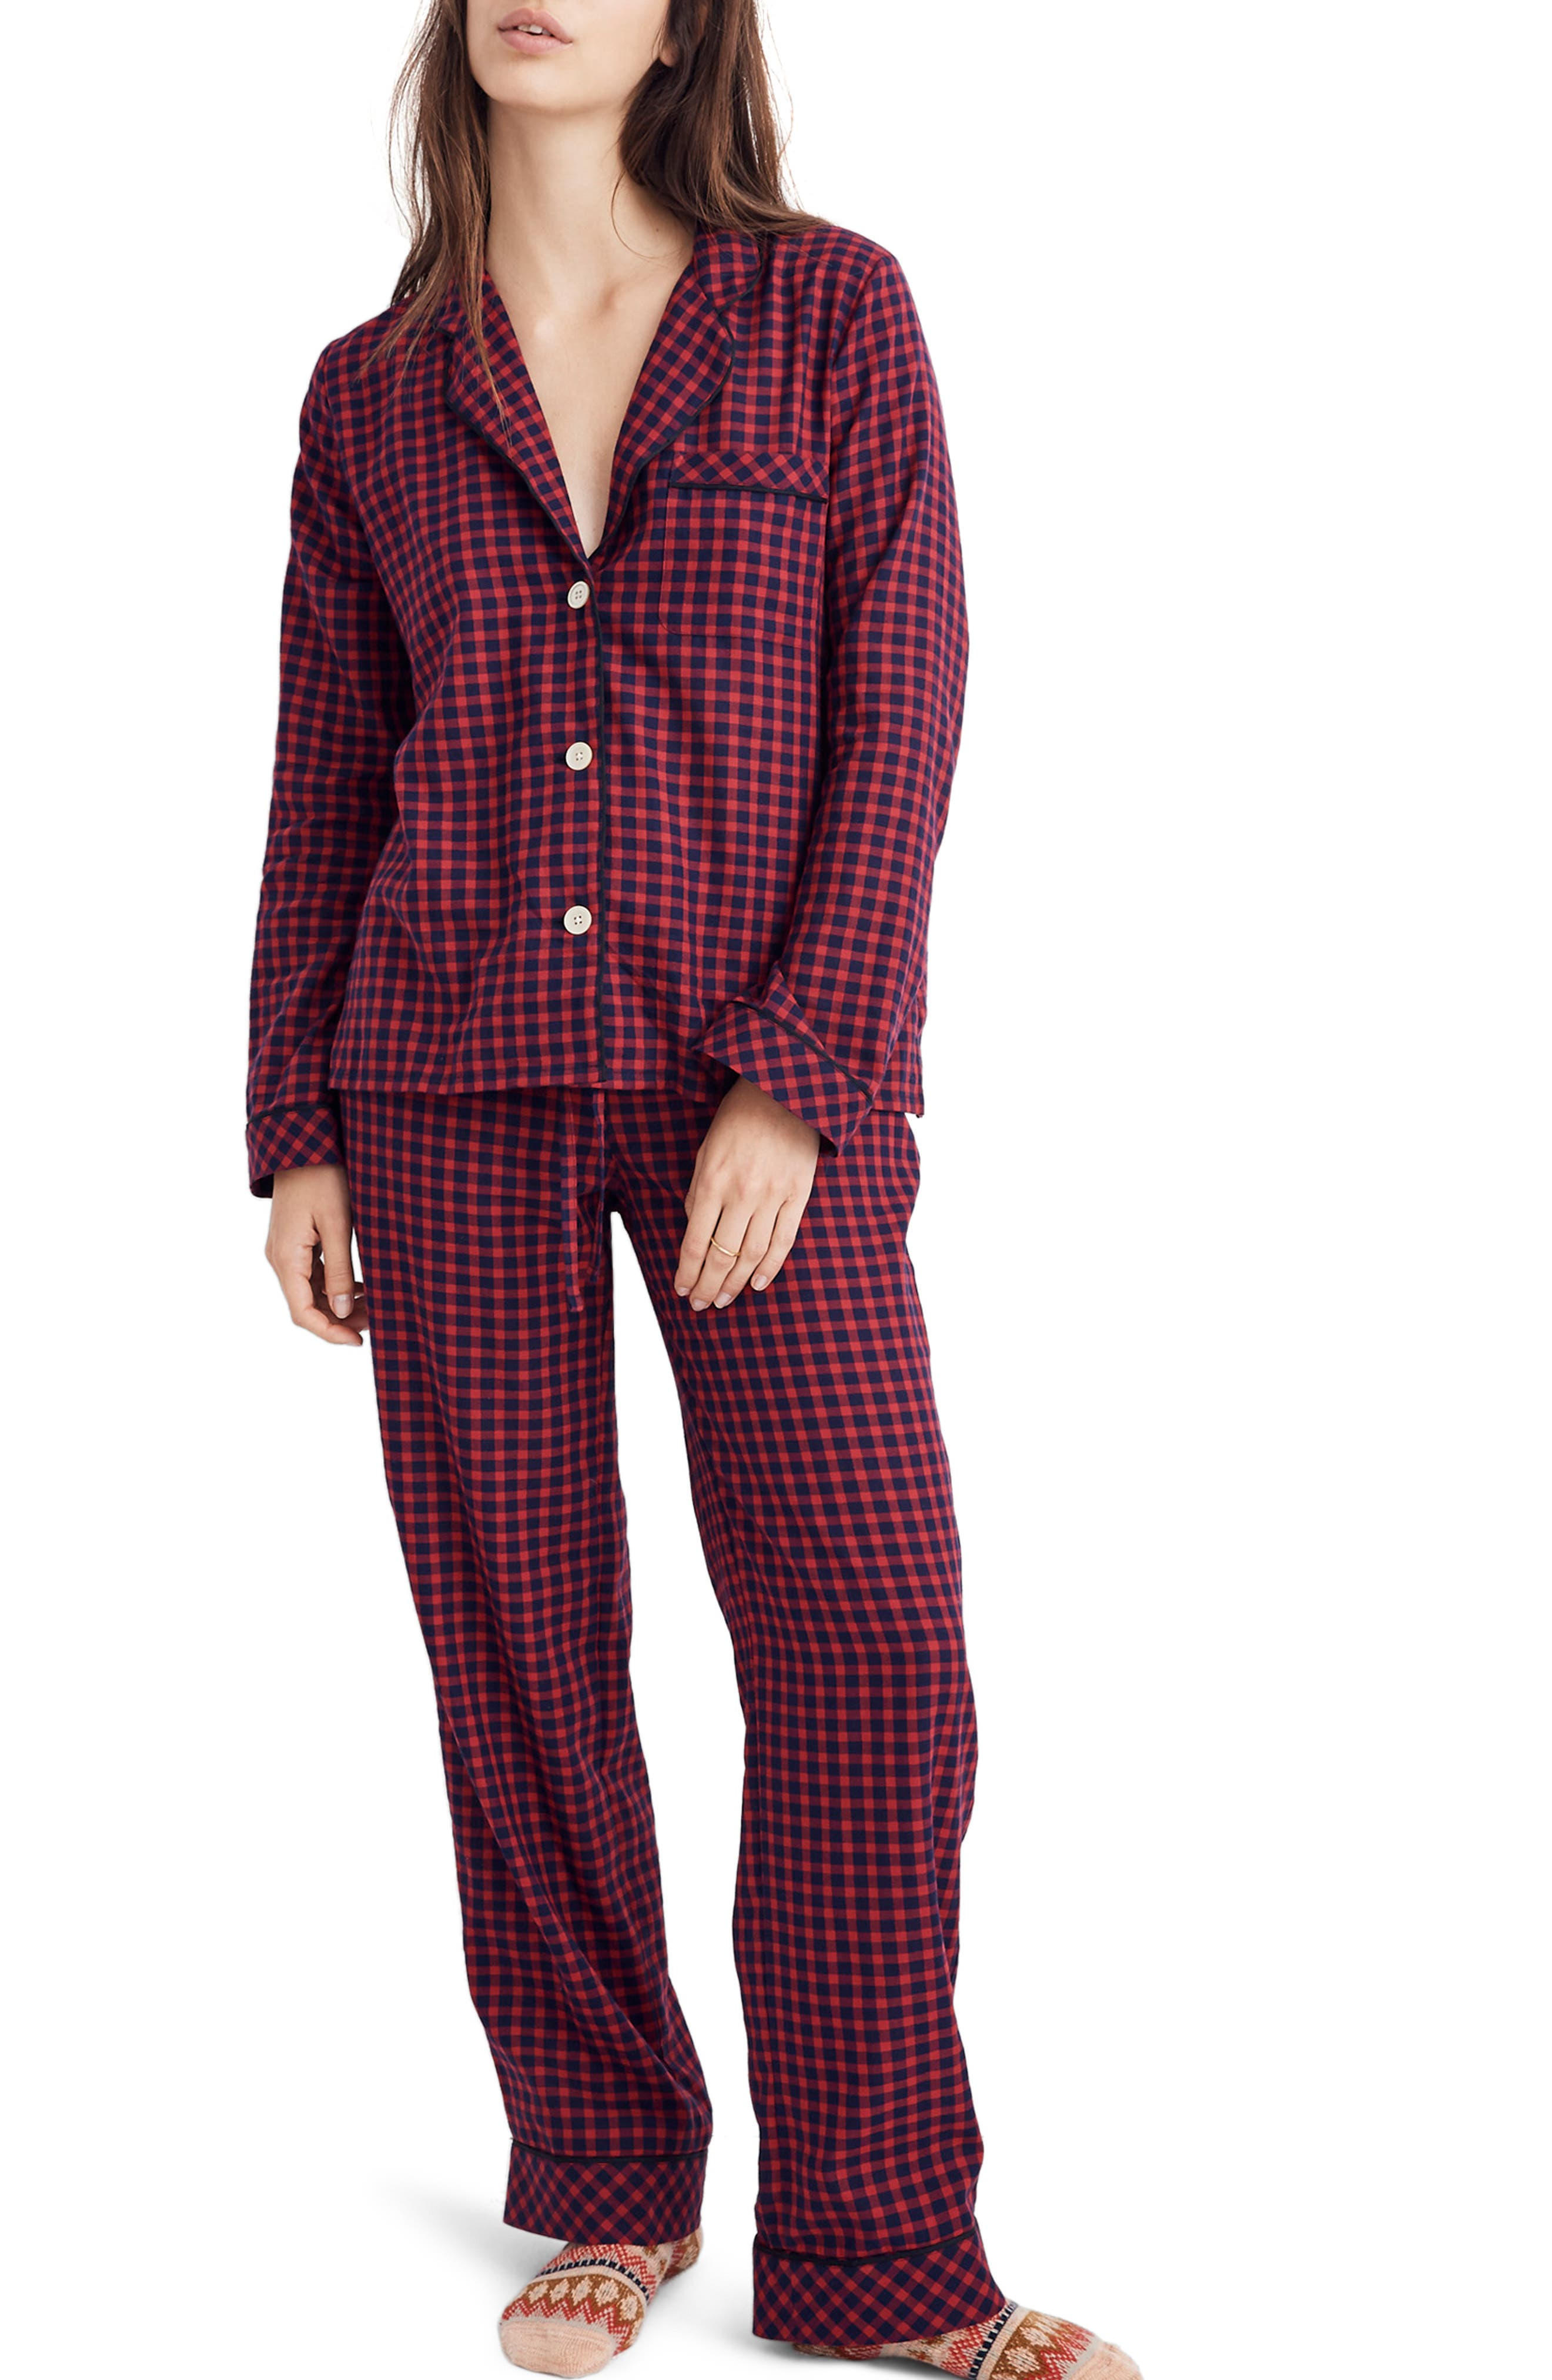 MADEWELL, Bedtime Long Sleeve Pajama Top, Main thumbnail 1, color, 601